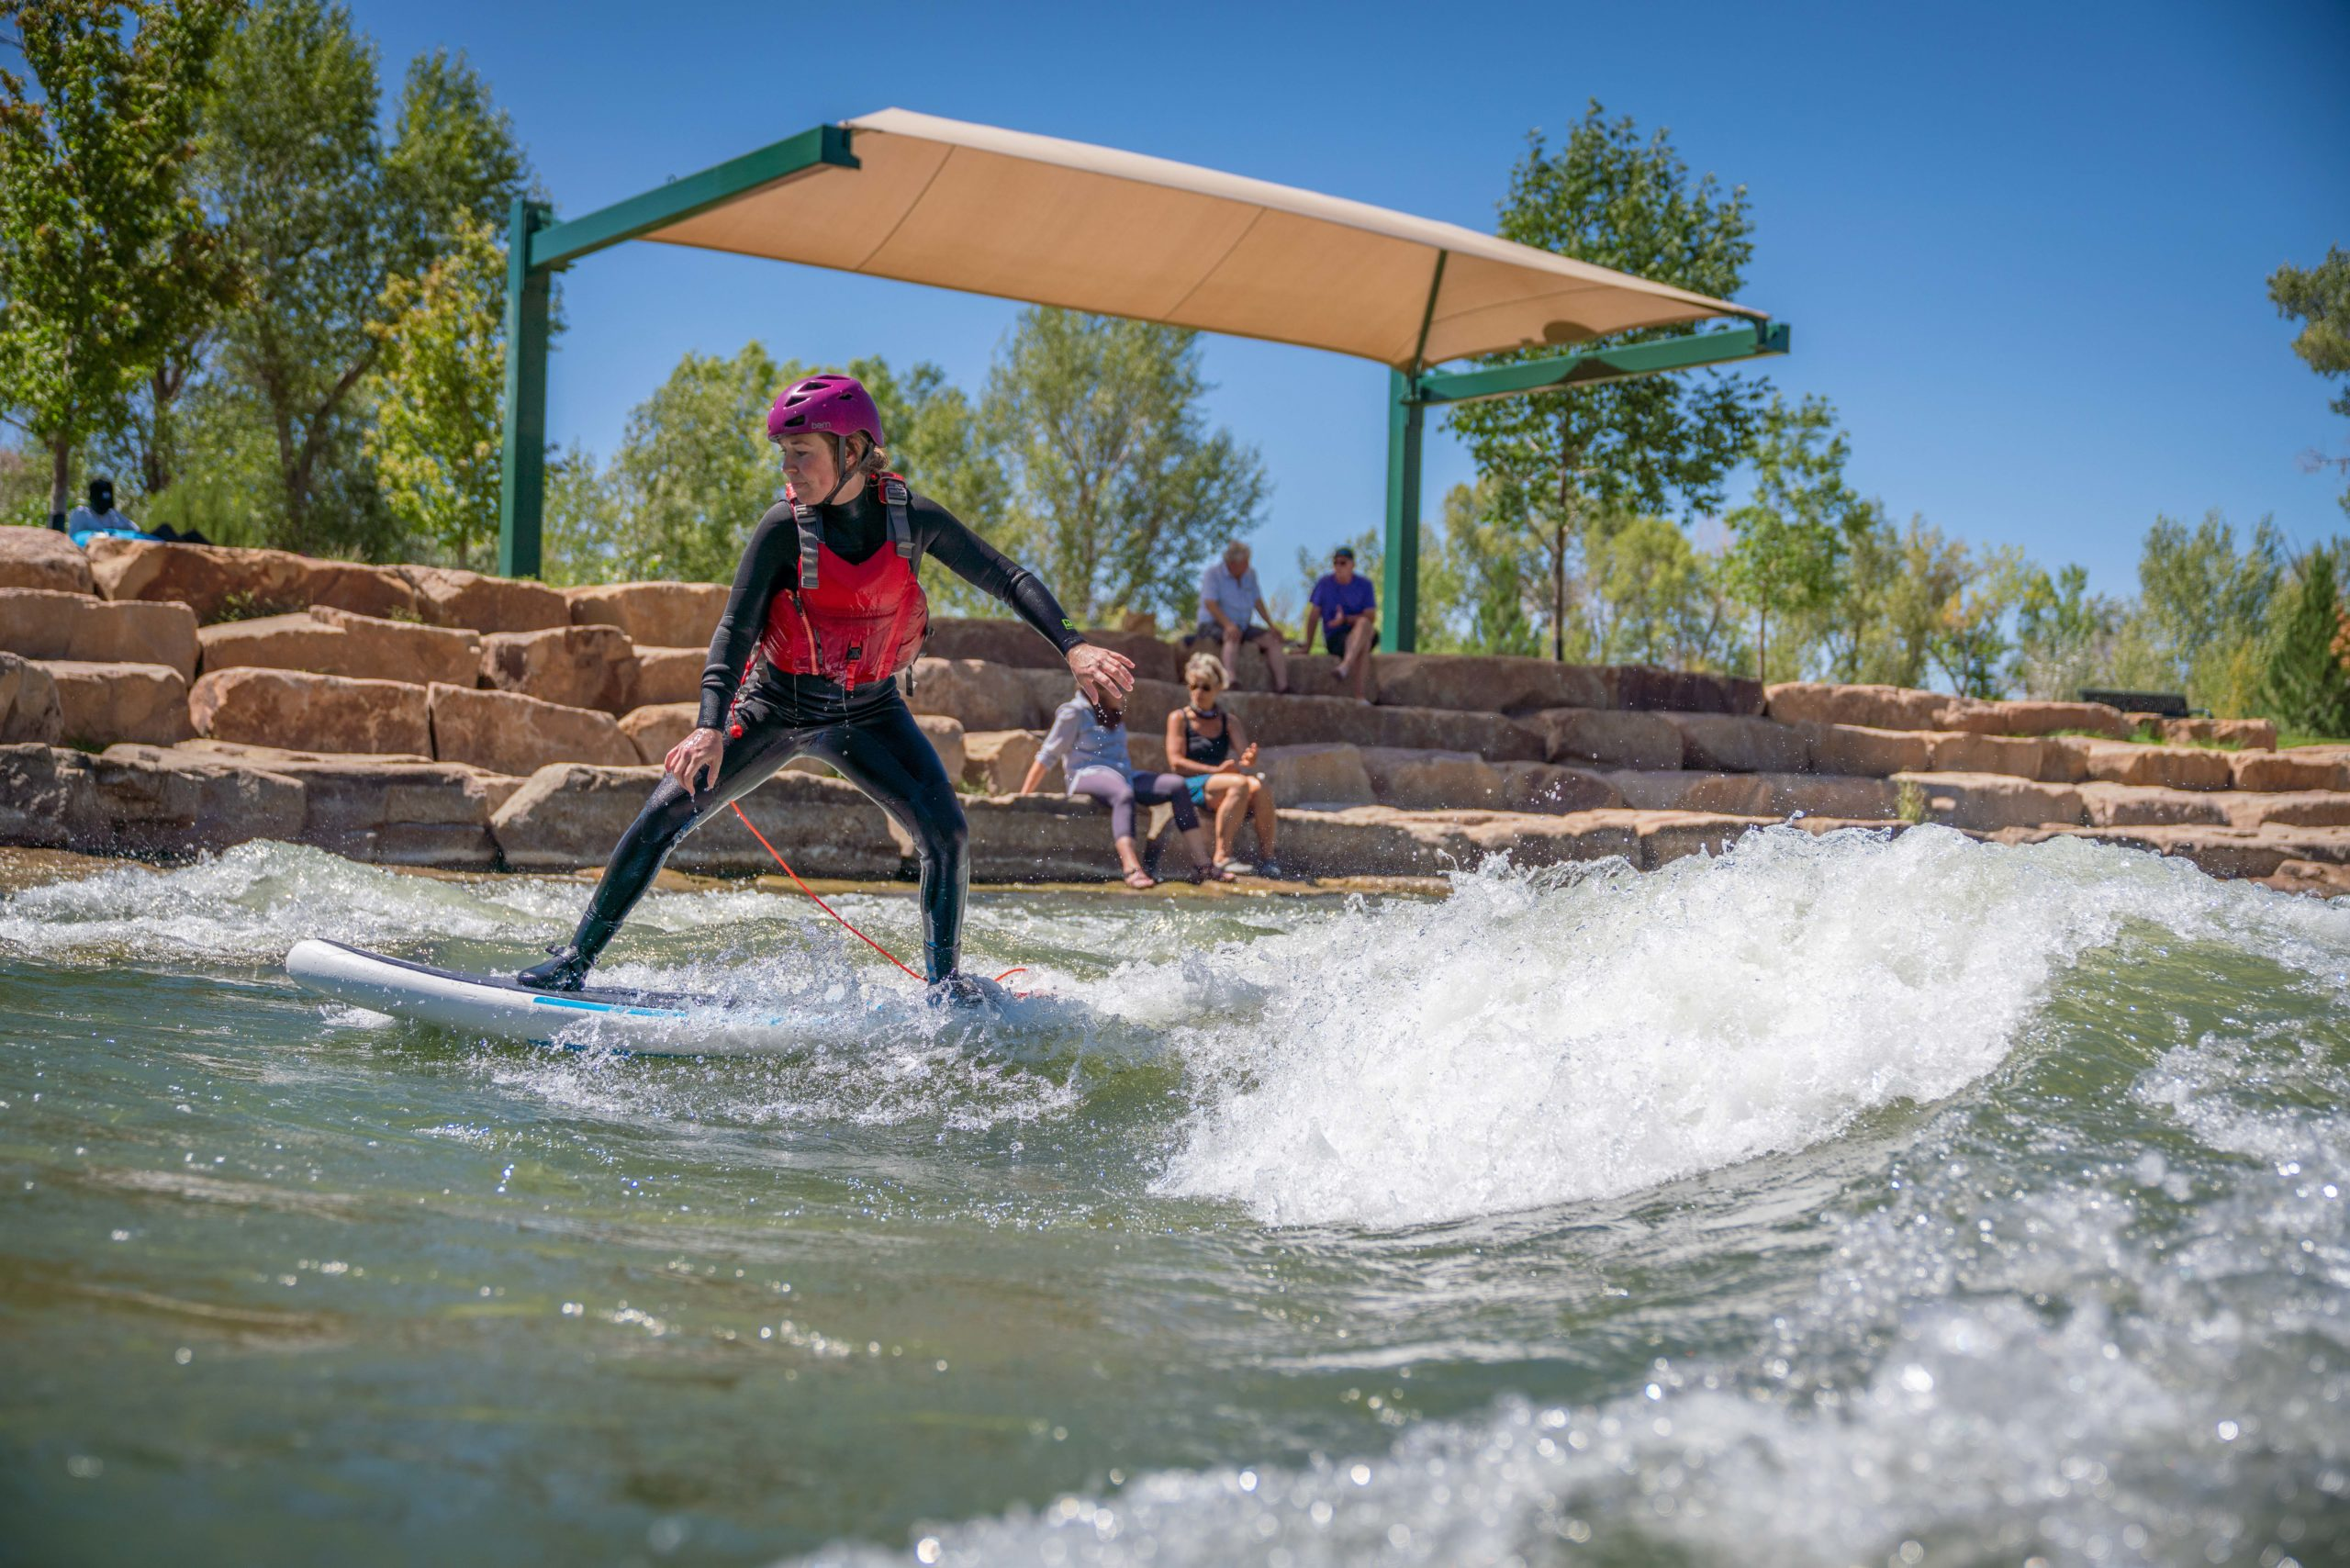 montrose water sports park river surfing